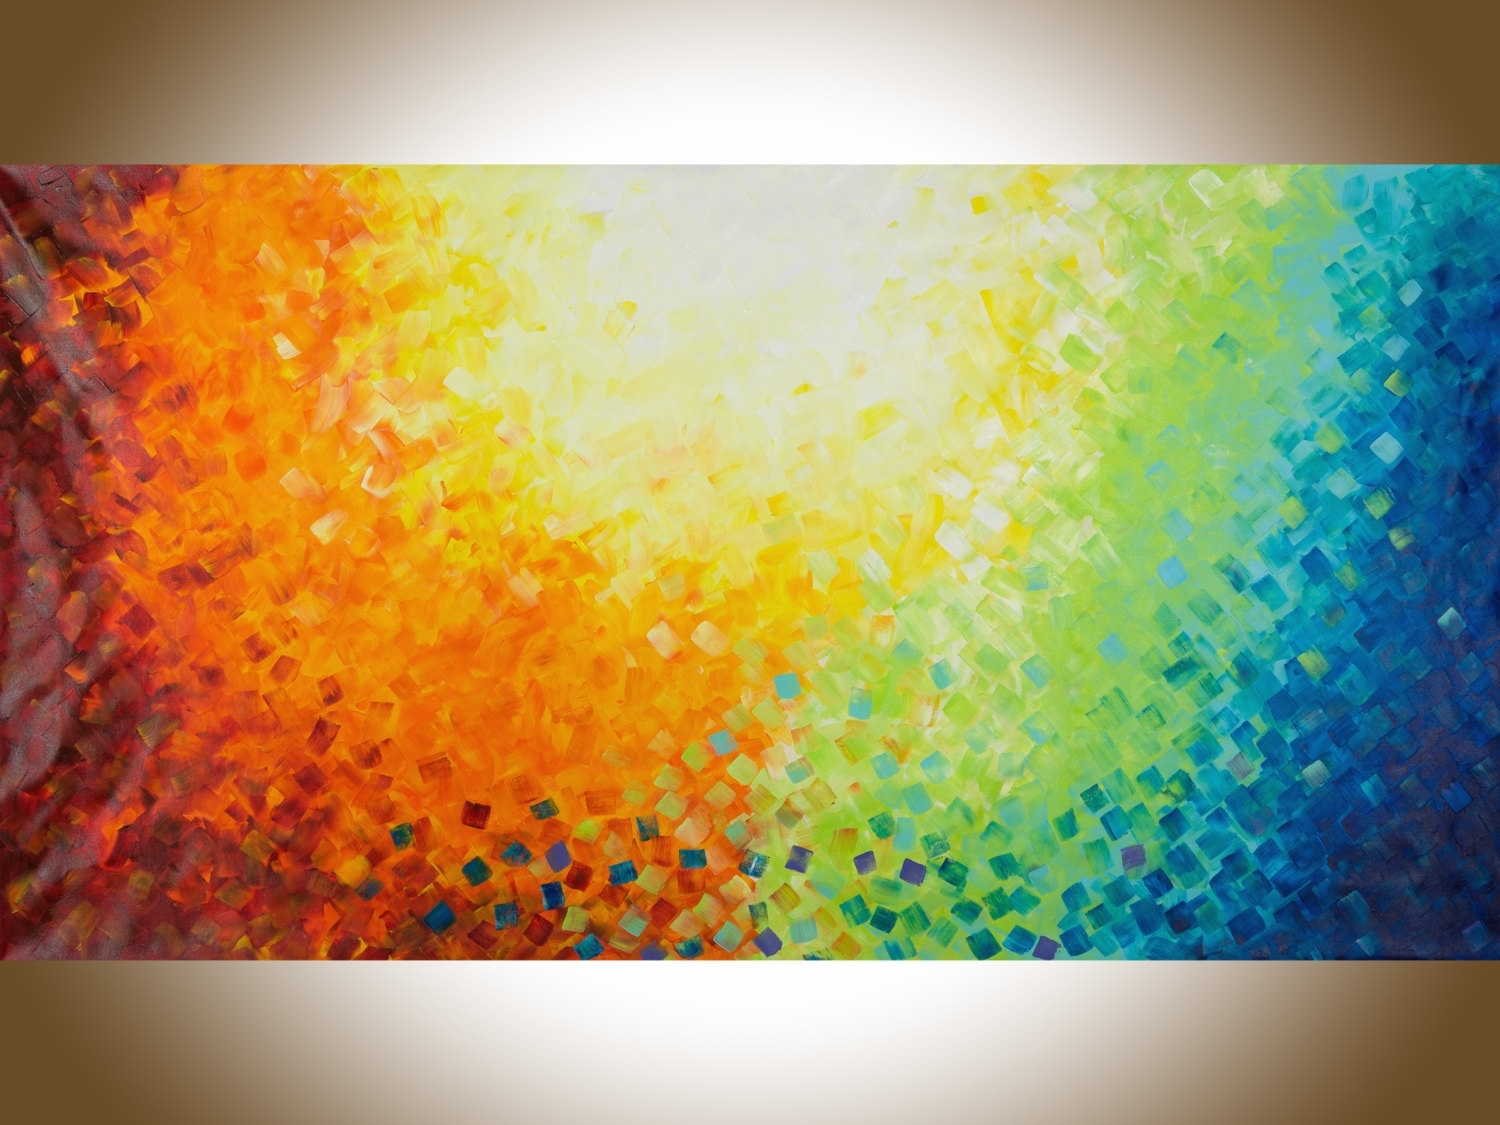 View Gallery of Colourful Abstract Wall Art (Showing 6 of 20 Photos)